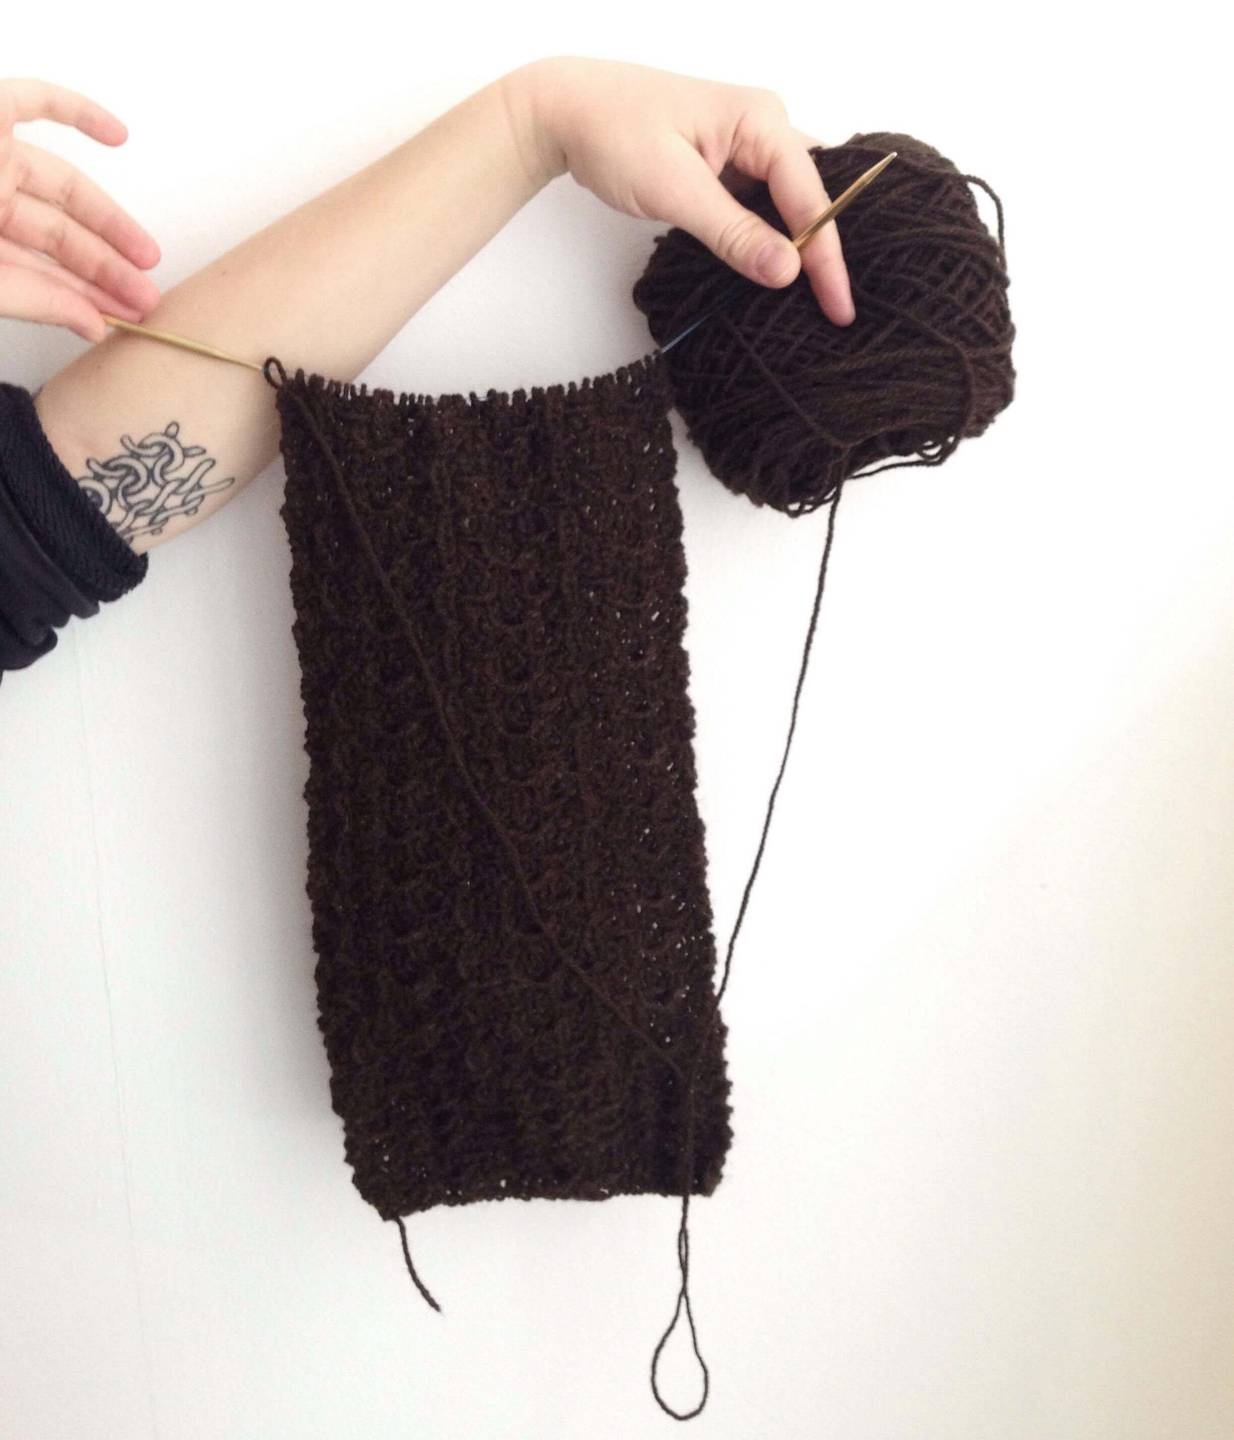 A knitted scarf being displayed Sustainable Wardrobe pbs rewire